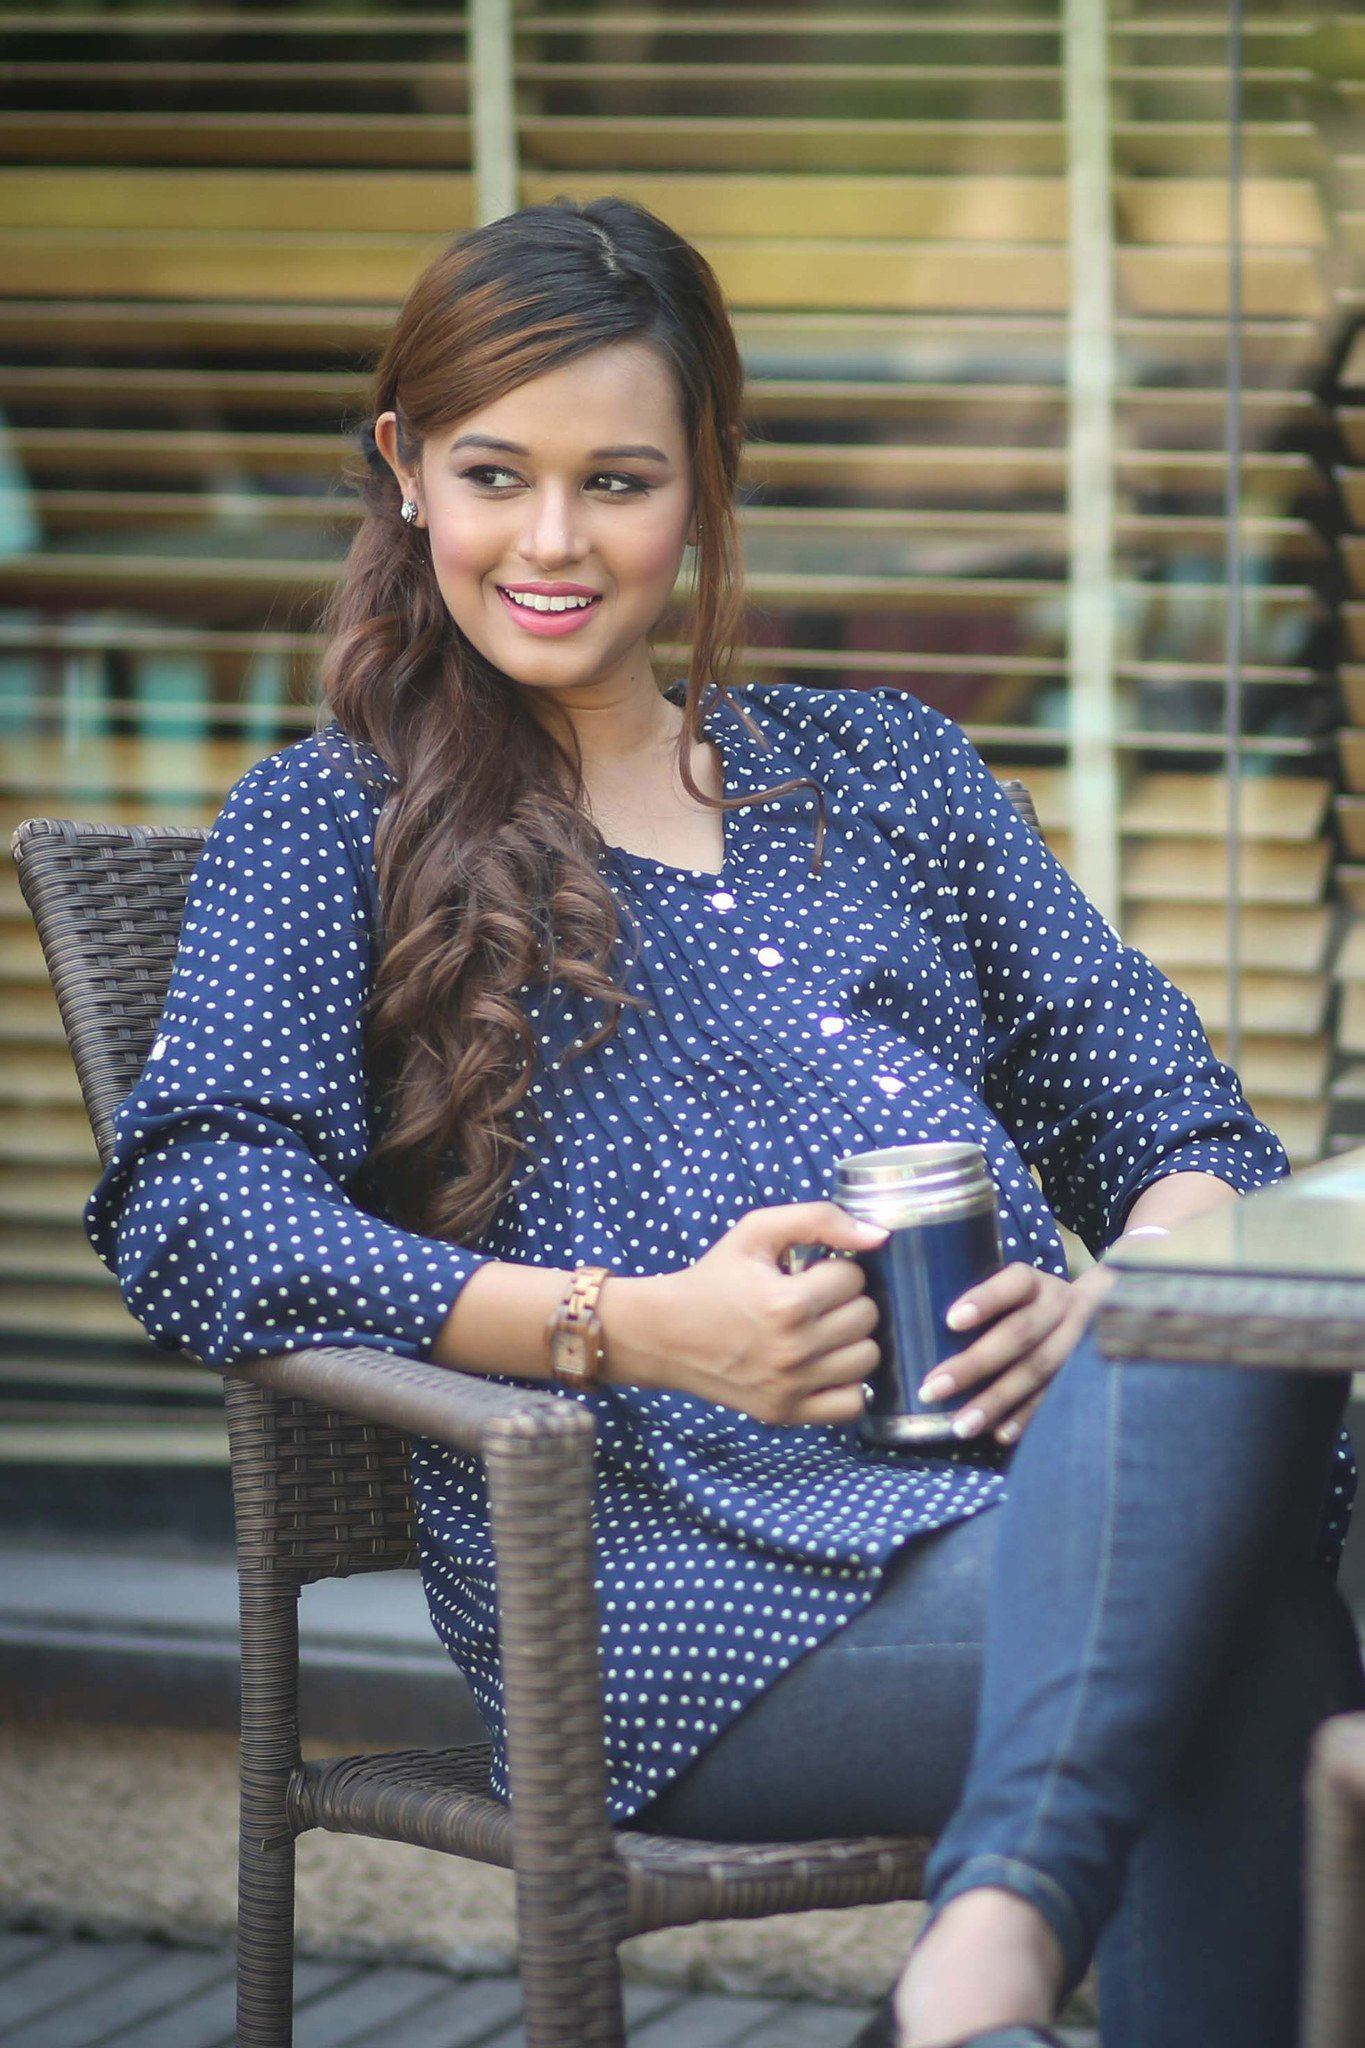 Blue Polka Dot Maternity Shirt - MOMZJOY.COM - 1